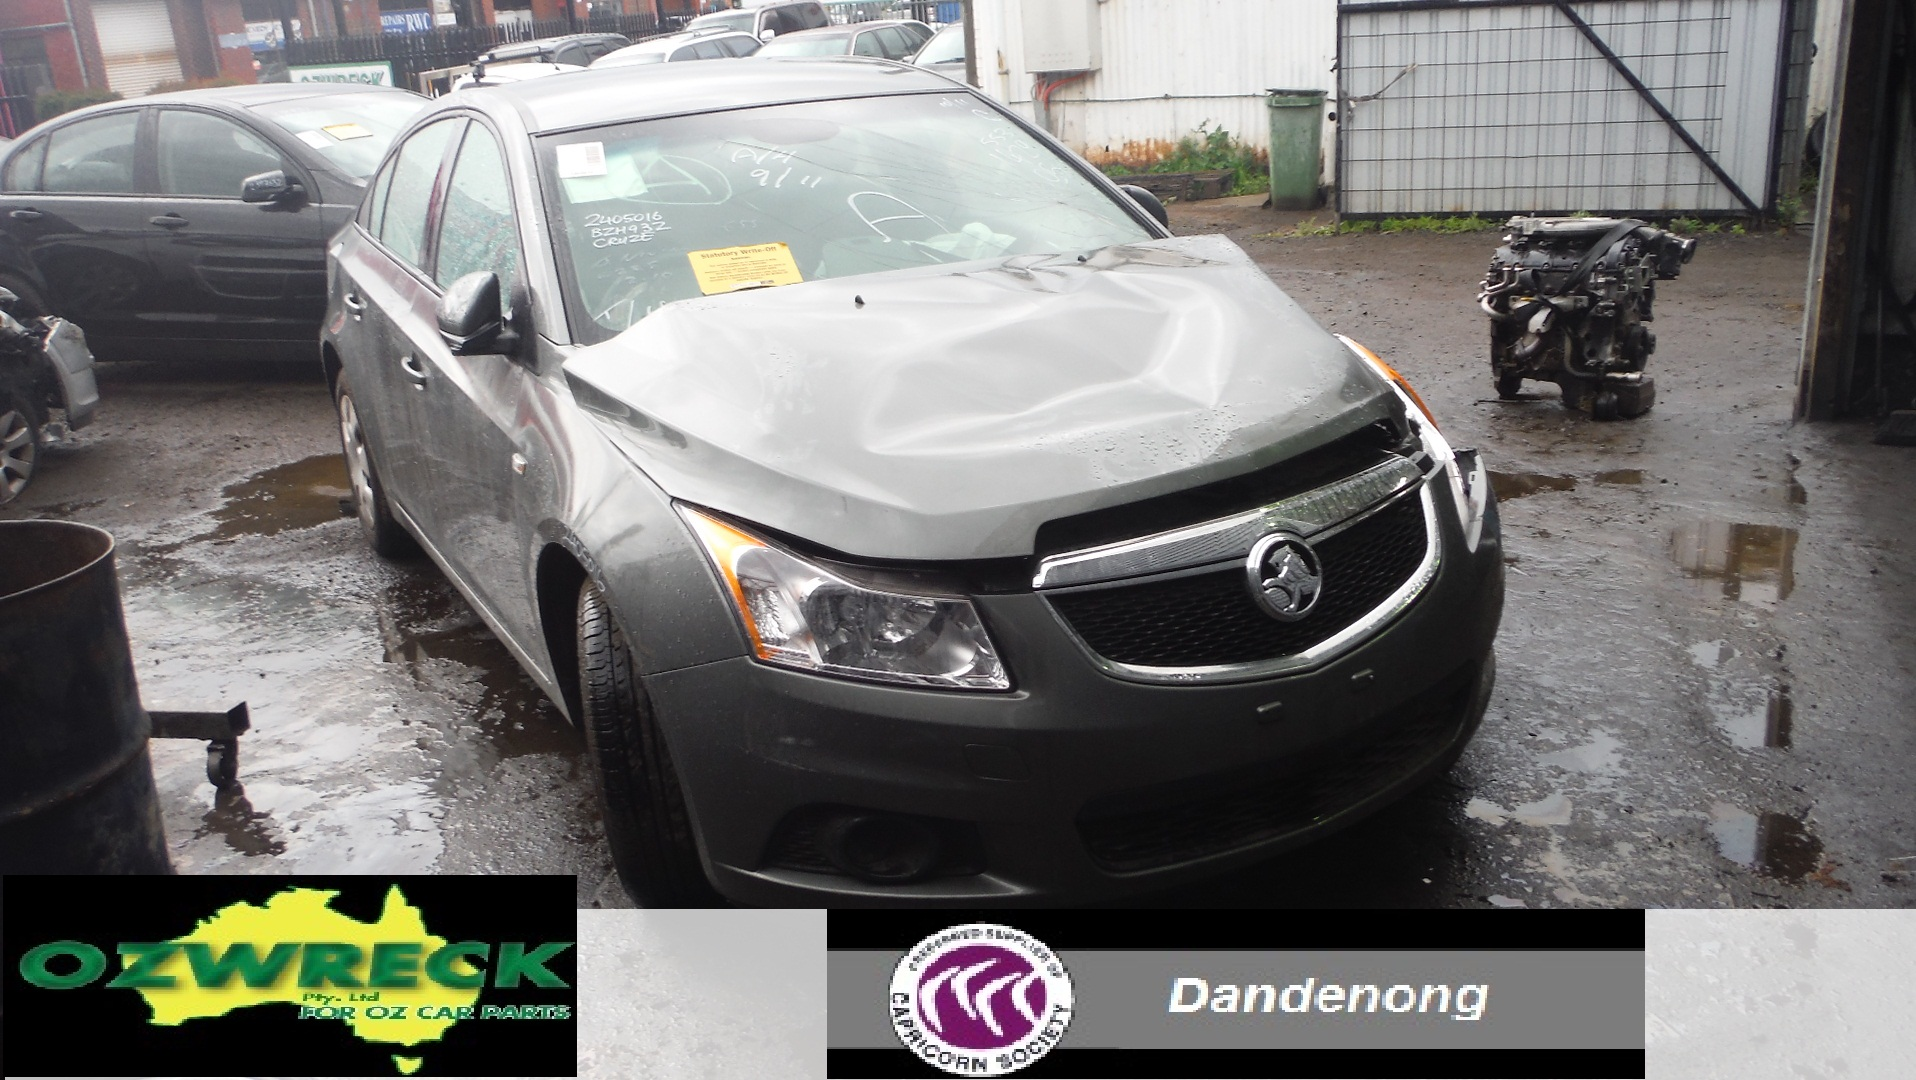 2011 Holden Cruze Jg Cd Sedan Ozwreck